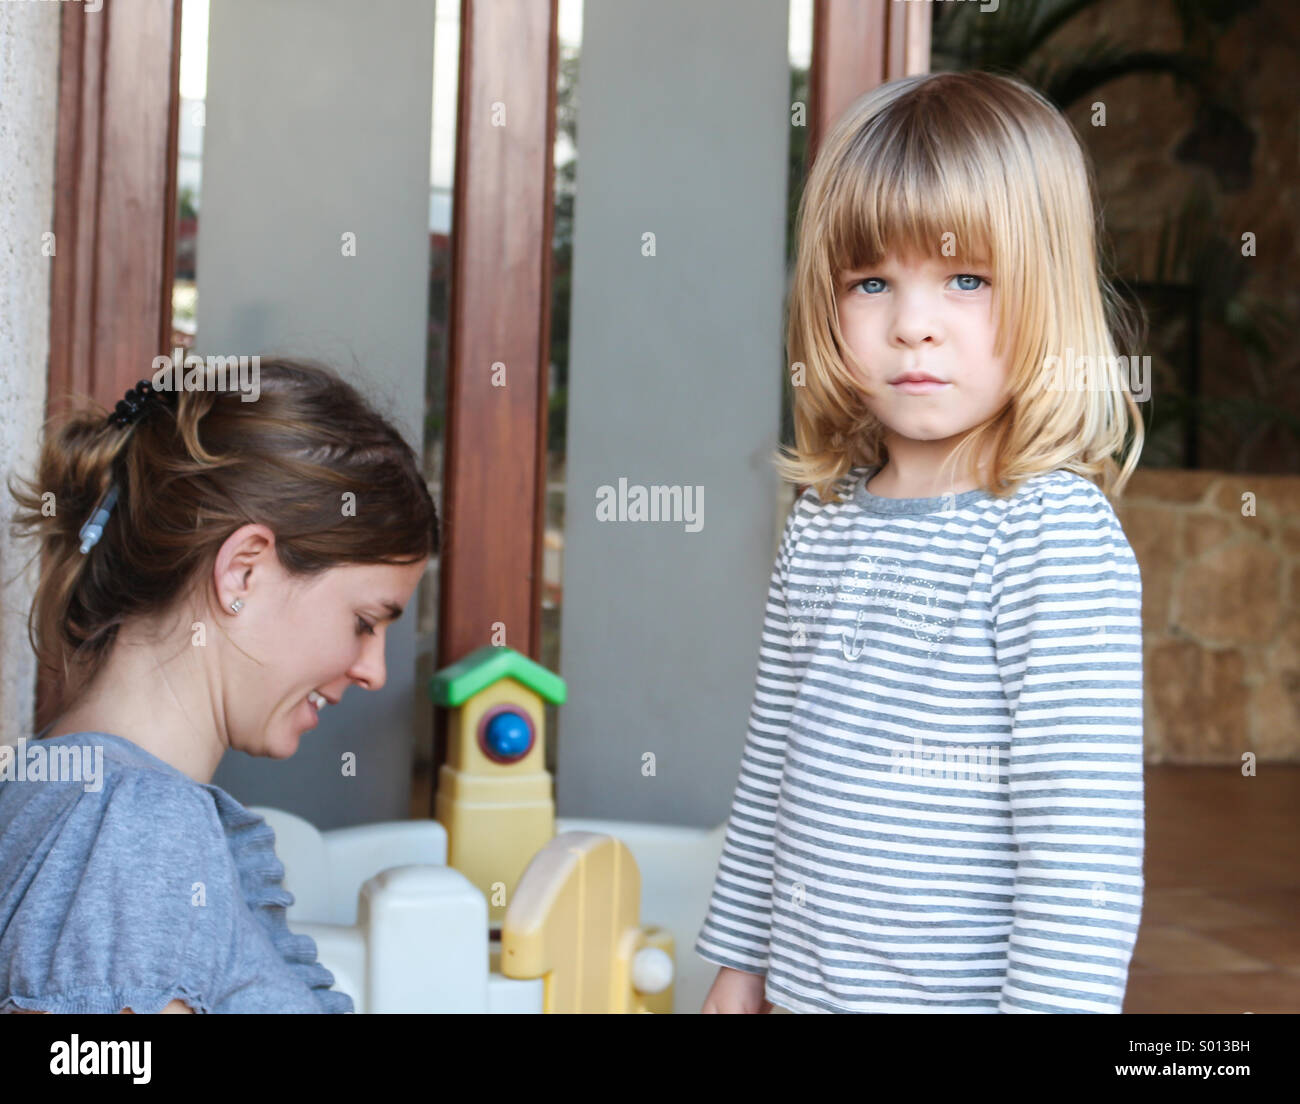 No more photos dad ! - Stock Image